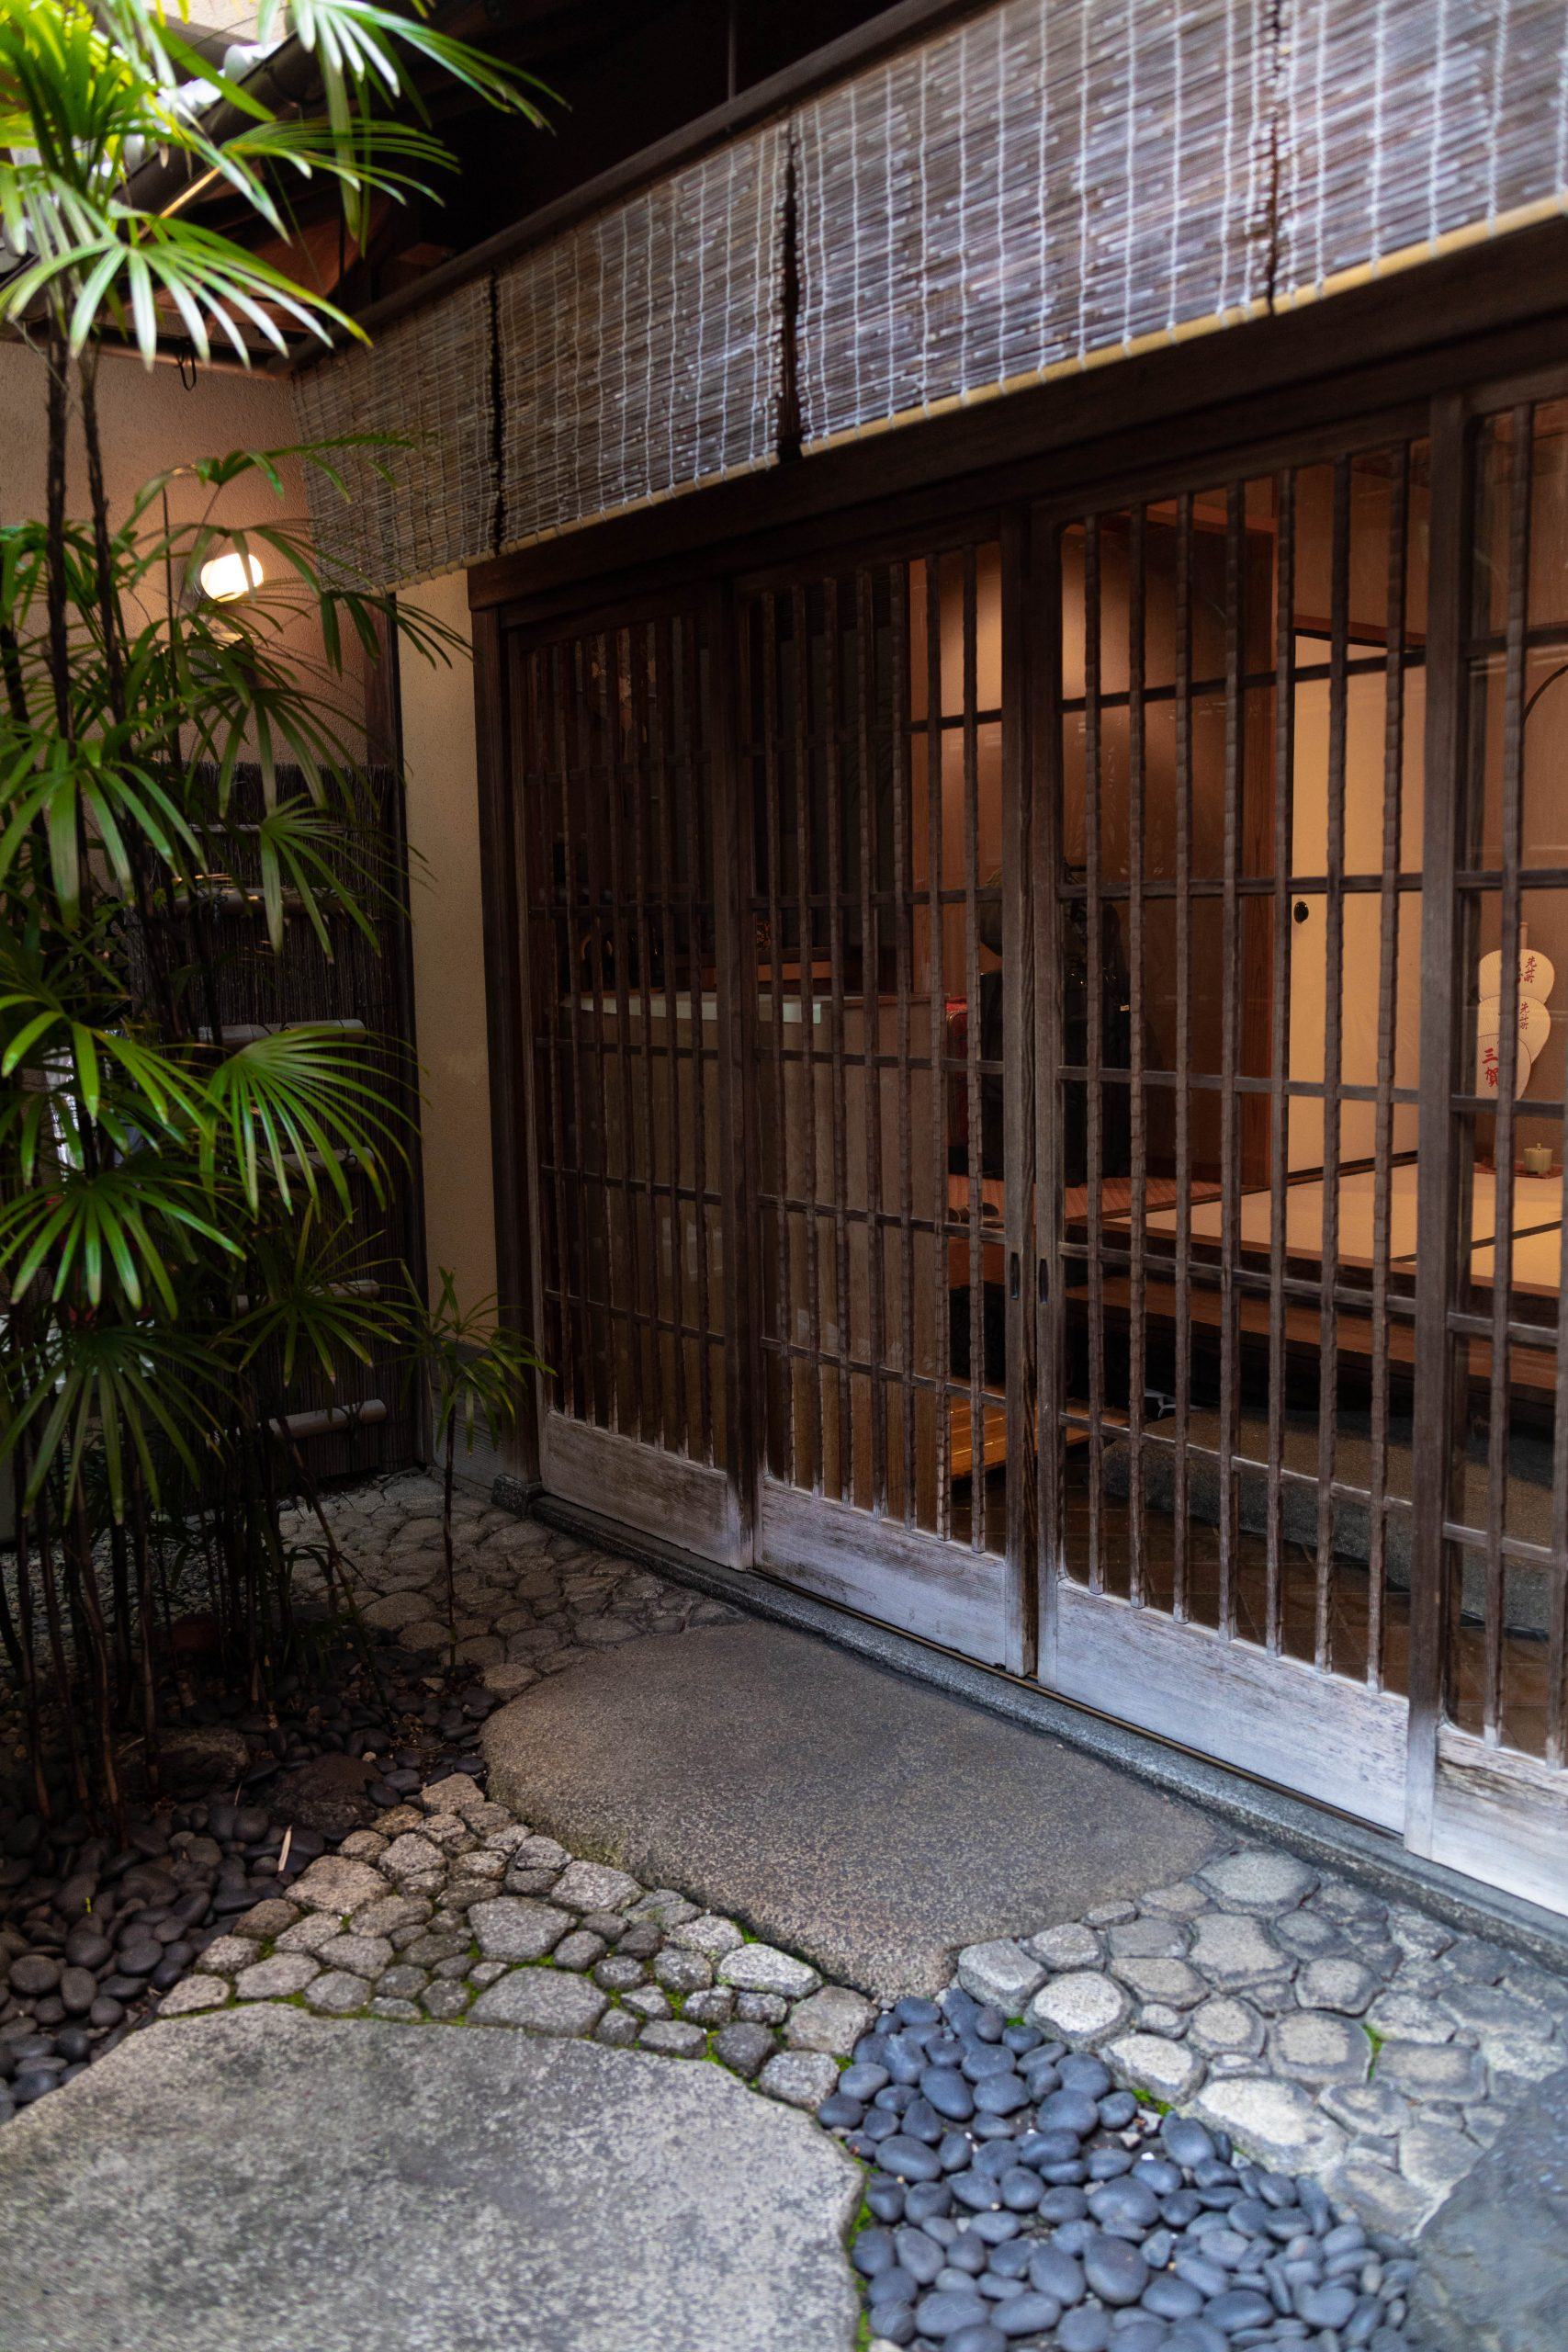 Ryokan Sanga Kyoto, Japan the Official Luxury Travel Guide by Annie Fairfax What to See, Eat, and Do in Kyoto